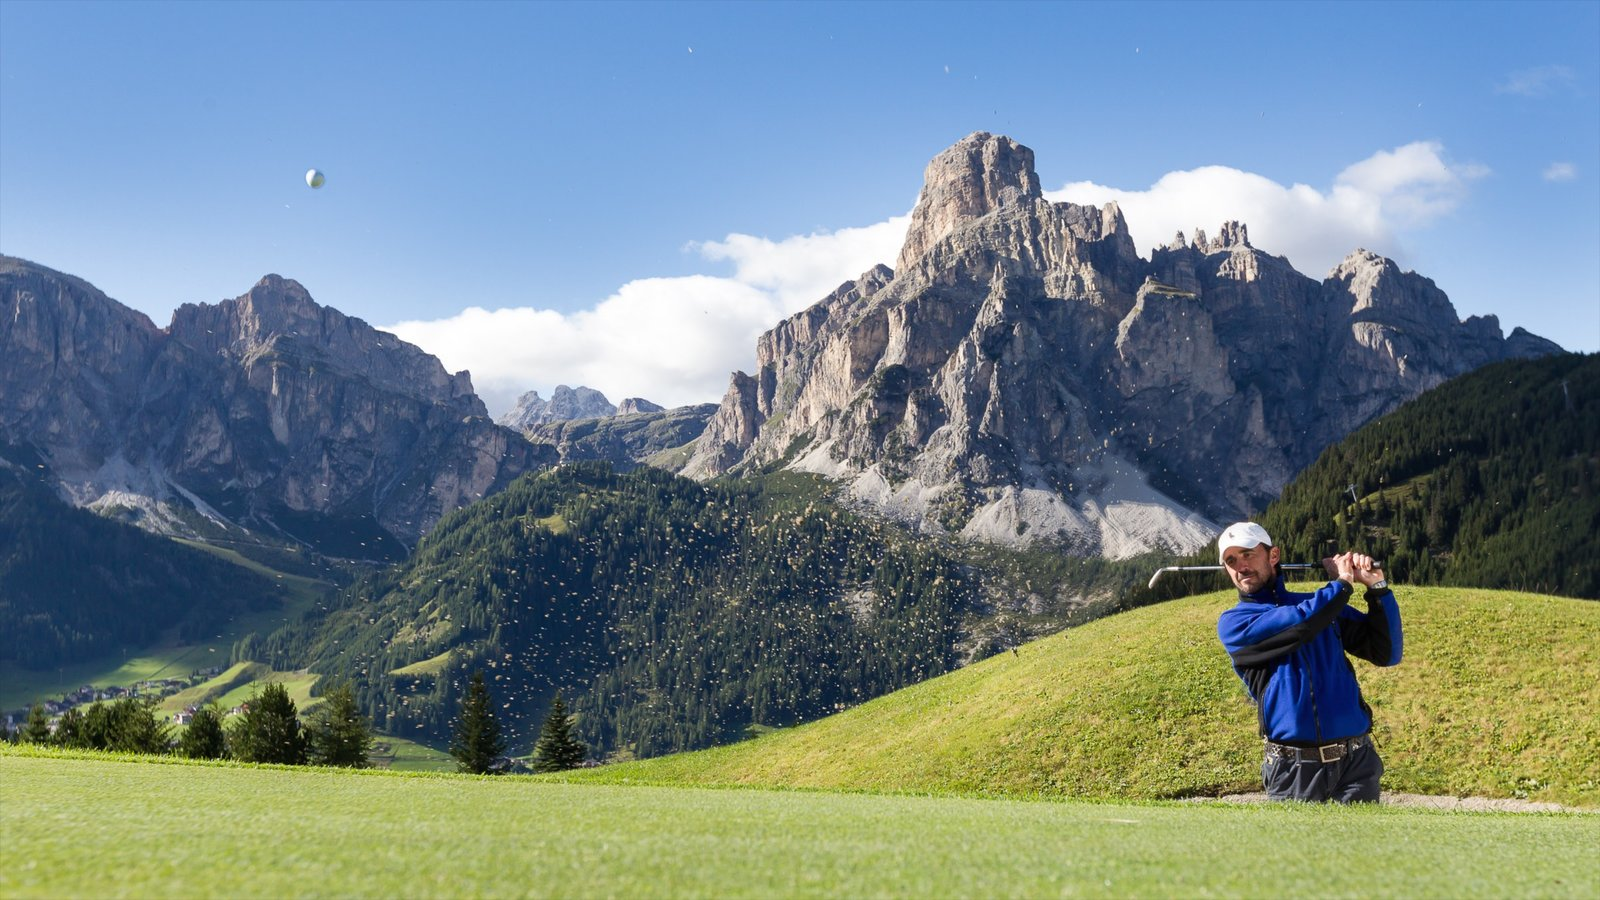 Alta Badia featuring golf and mountains as well as an individual male